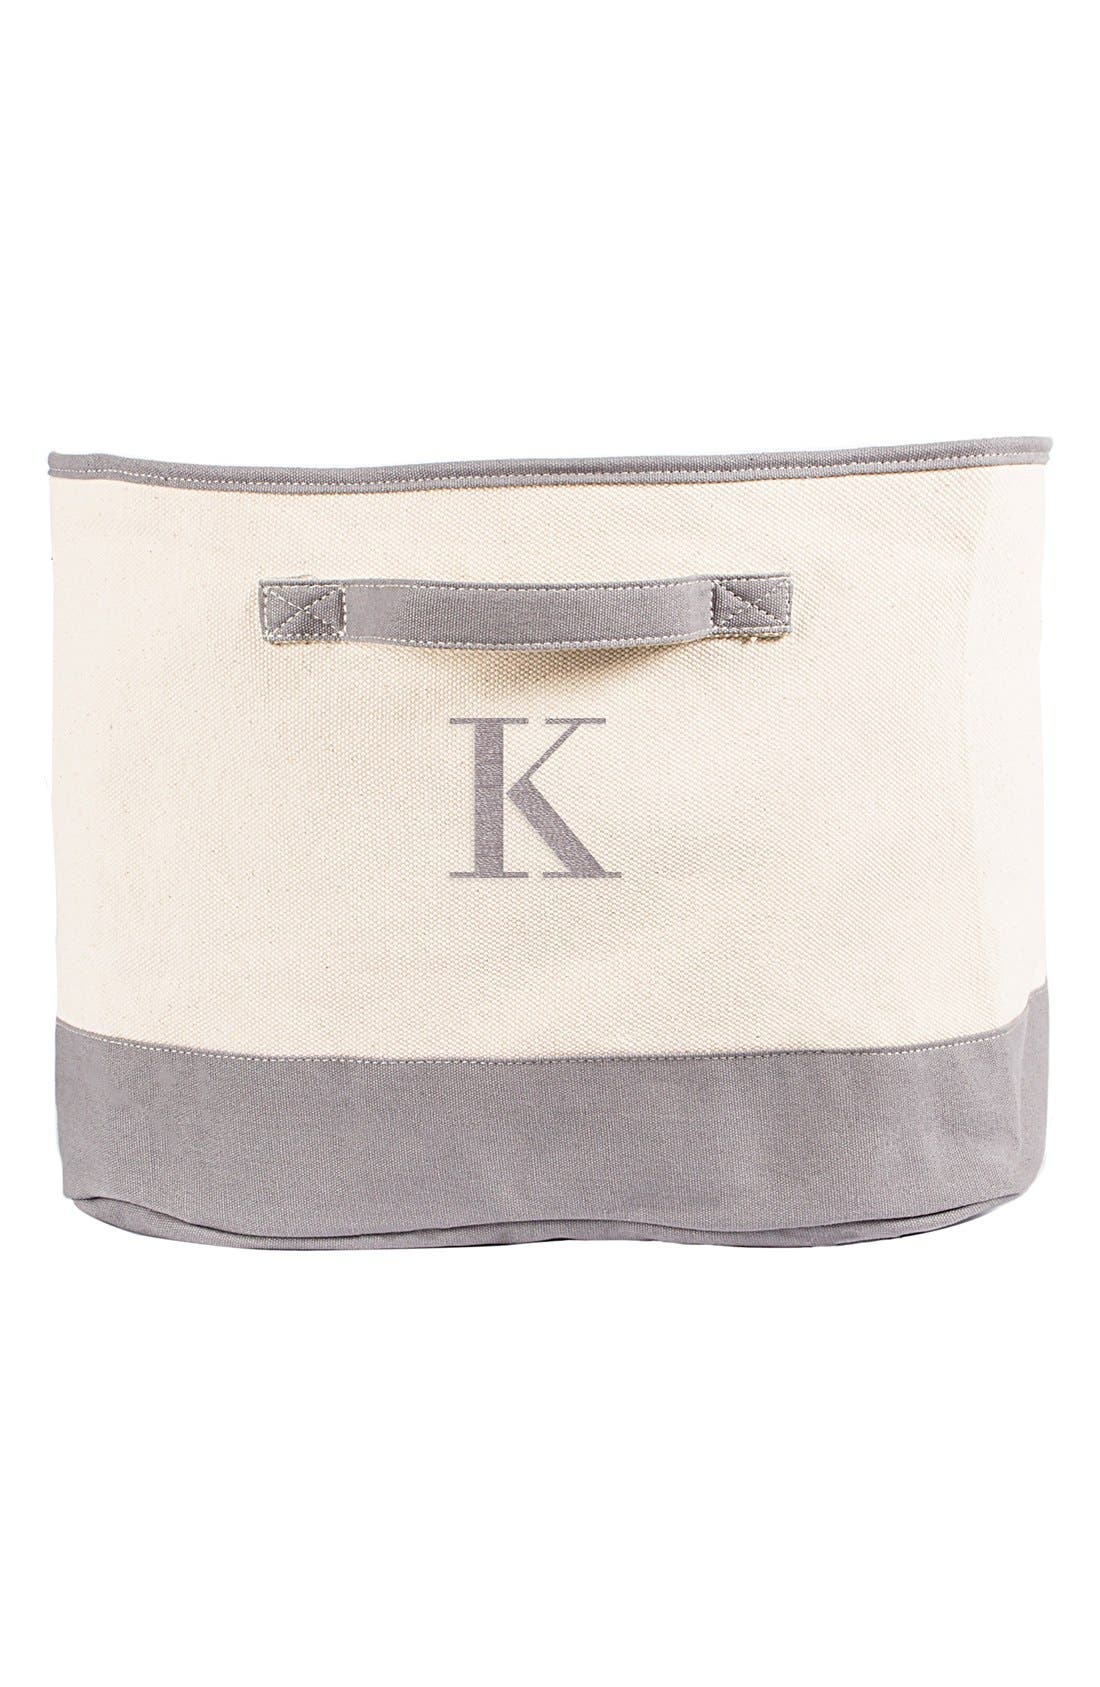 Monogram Square Canvas Bin,                             Alternate thumbnail 2, color,                             035